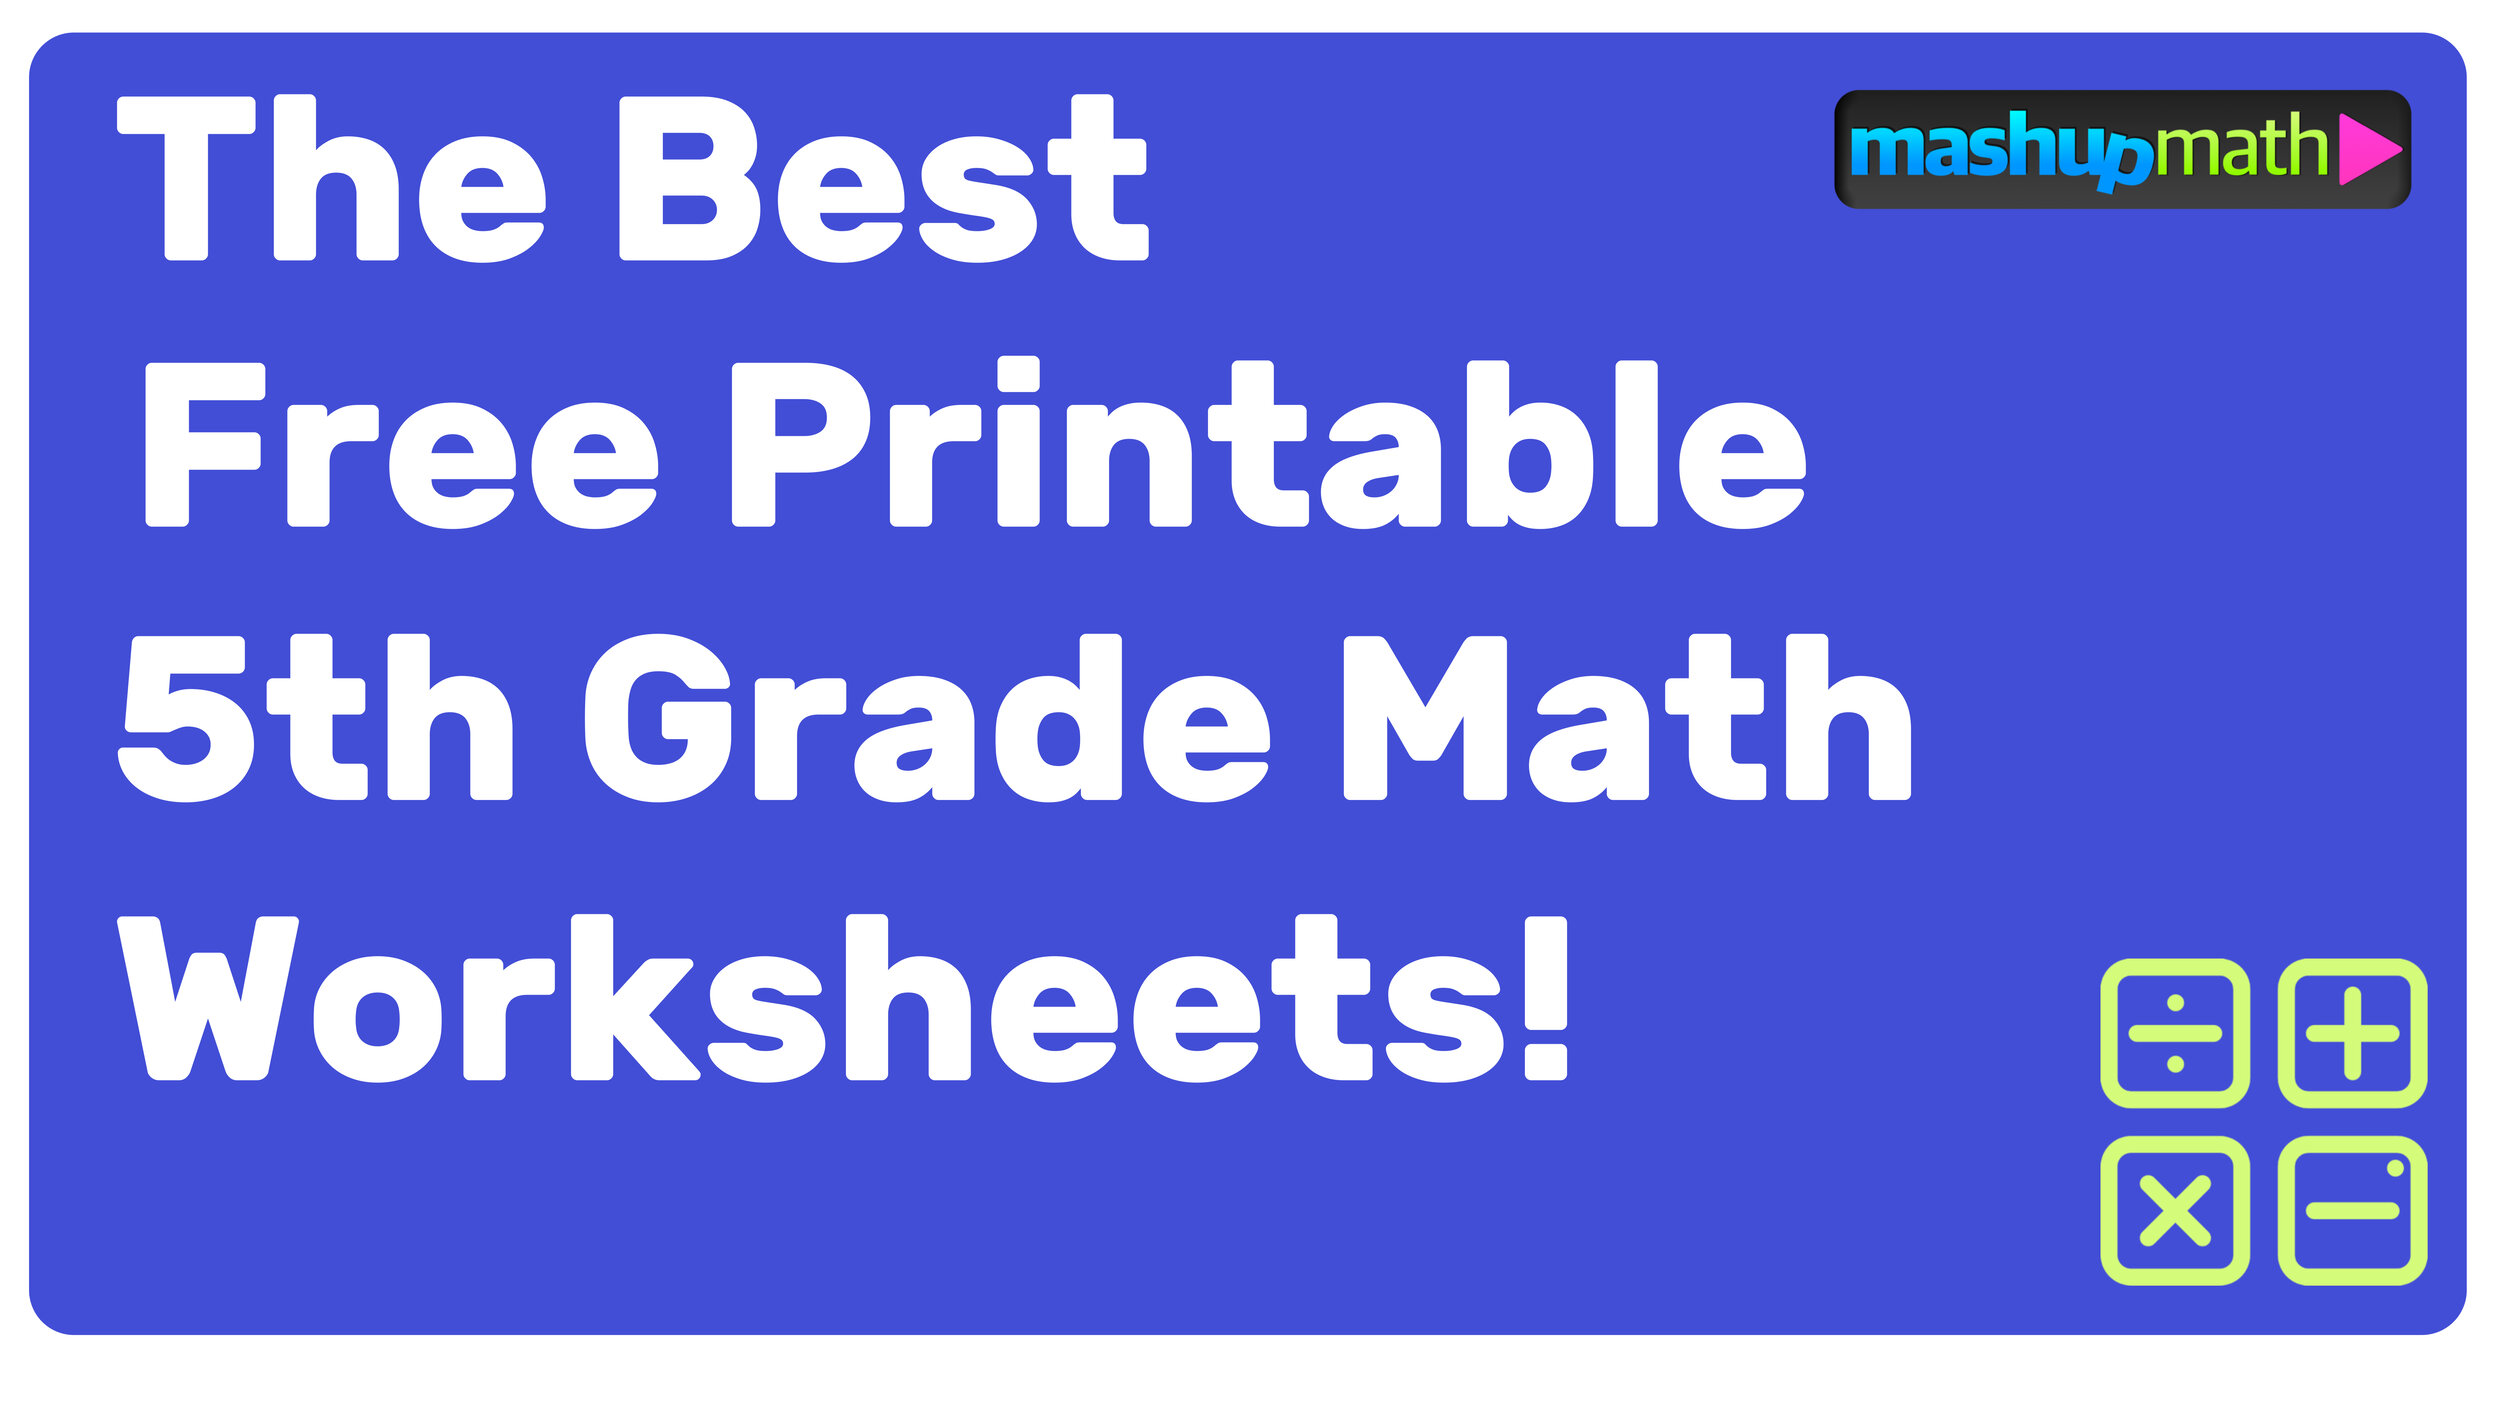 hight resolution of Free Printable 5th Grade Math Worksheets (with Answers!) — Mashup Math